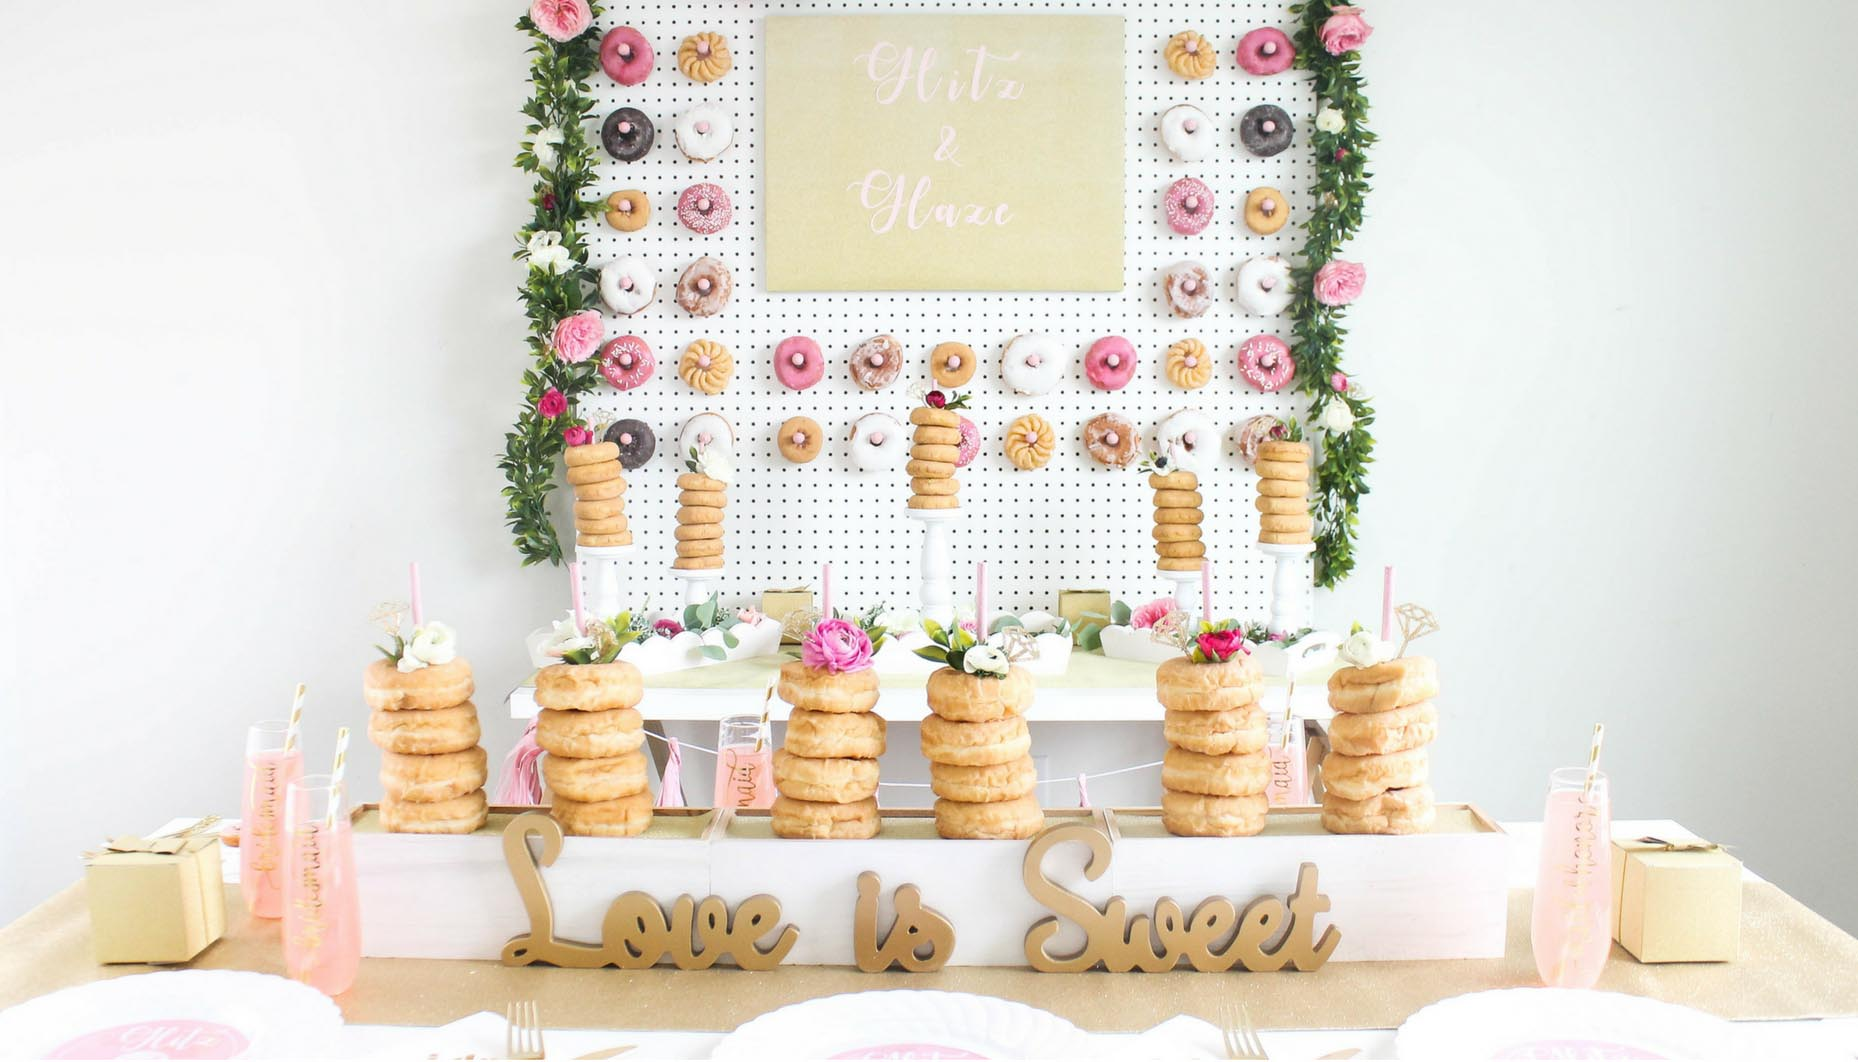 c1ca64d1a7f3 Glitz-and-Glaze-Donut-Bridal-Shower-Full-Party